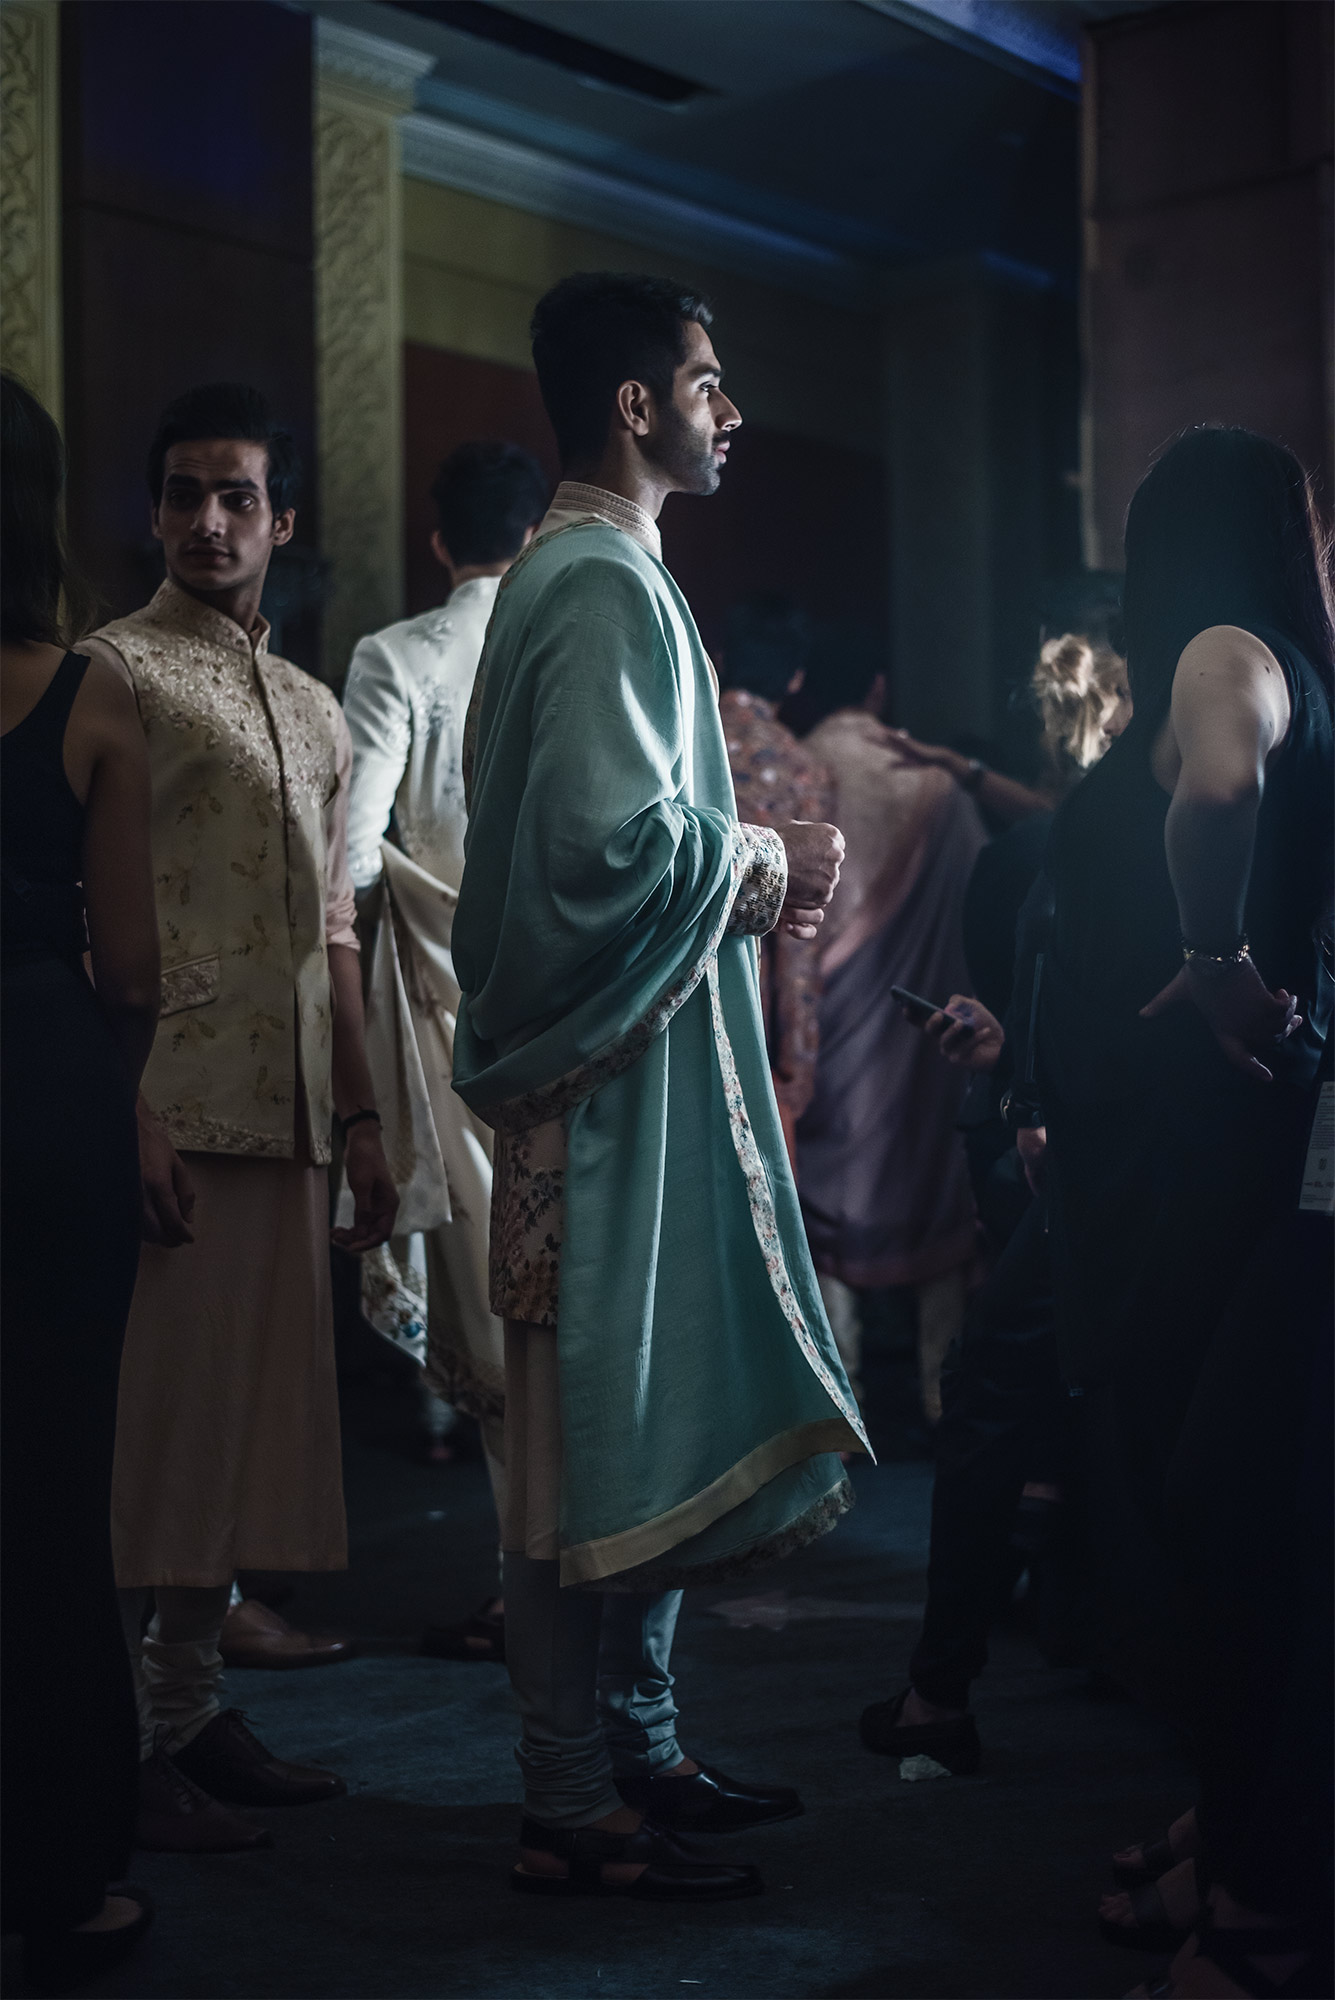 M.A.C. Backstage FDCI India Couture Week 2016 Photo by RAWKY KSH 32